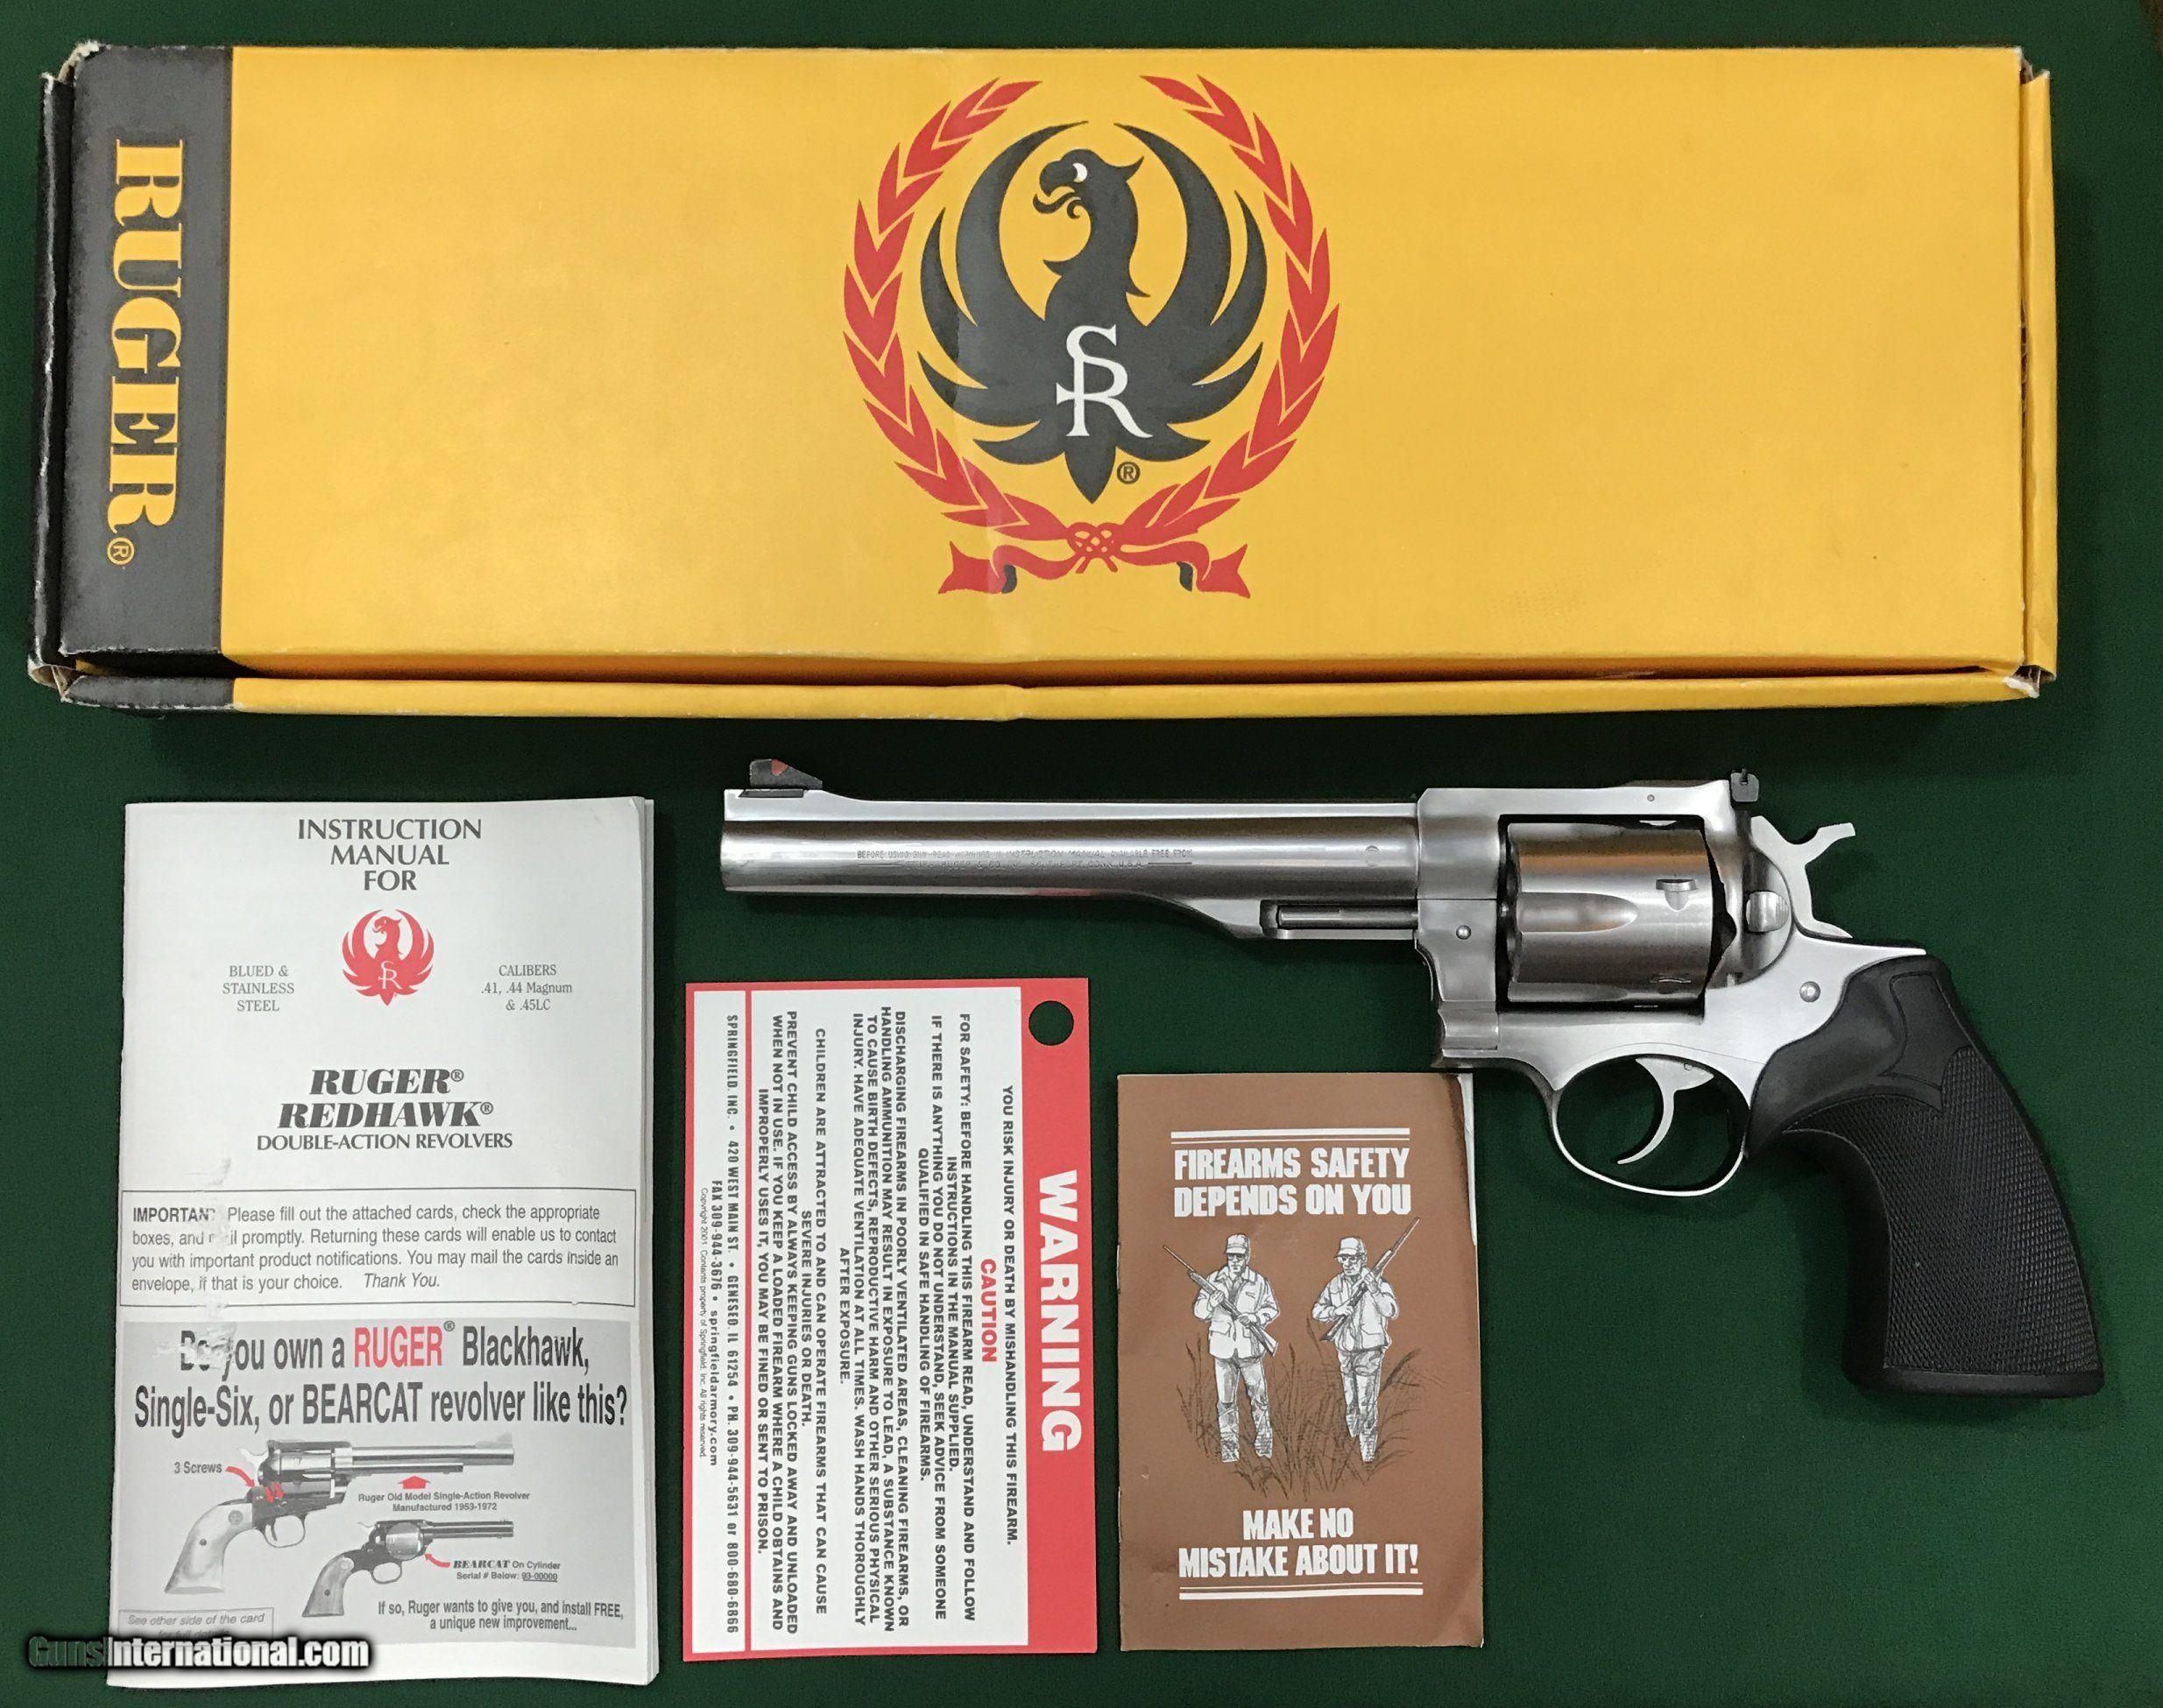 Ruger Redhawk,  44 Magnum, Stainless-Steel, Single-Action